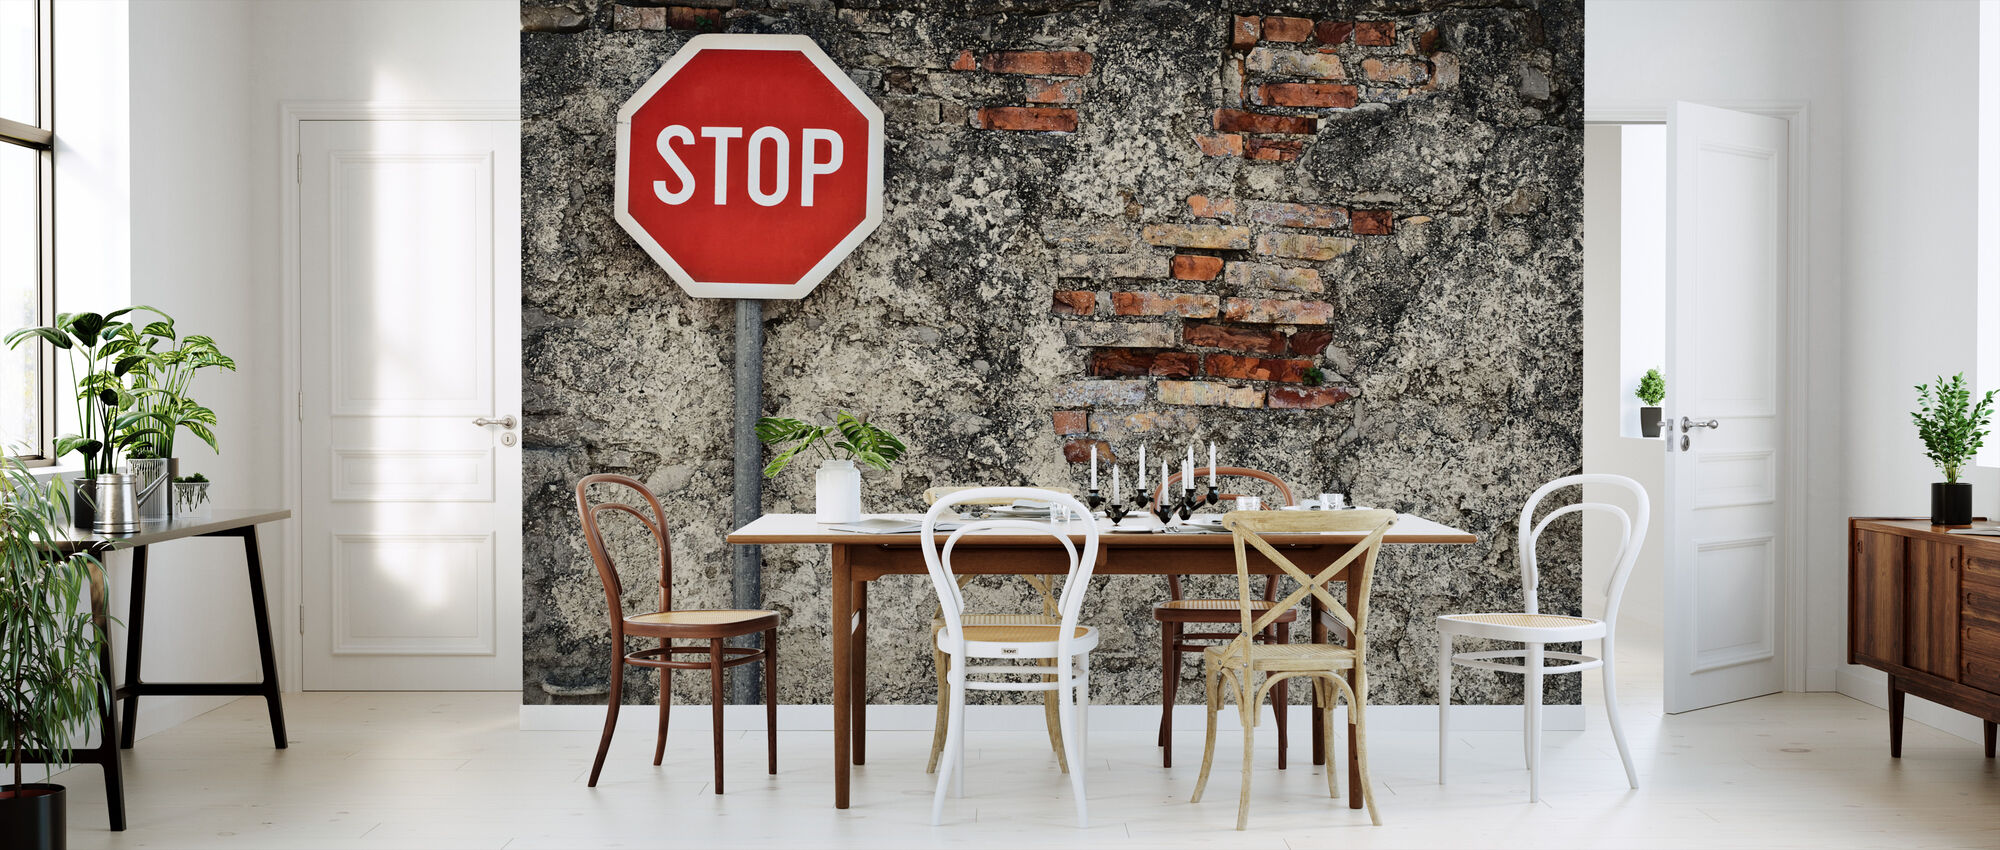 Stop Sign Against Grungy Wall - Wallpaper - Kitchen